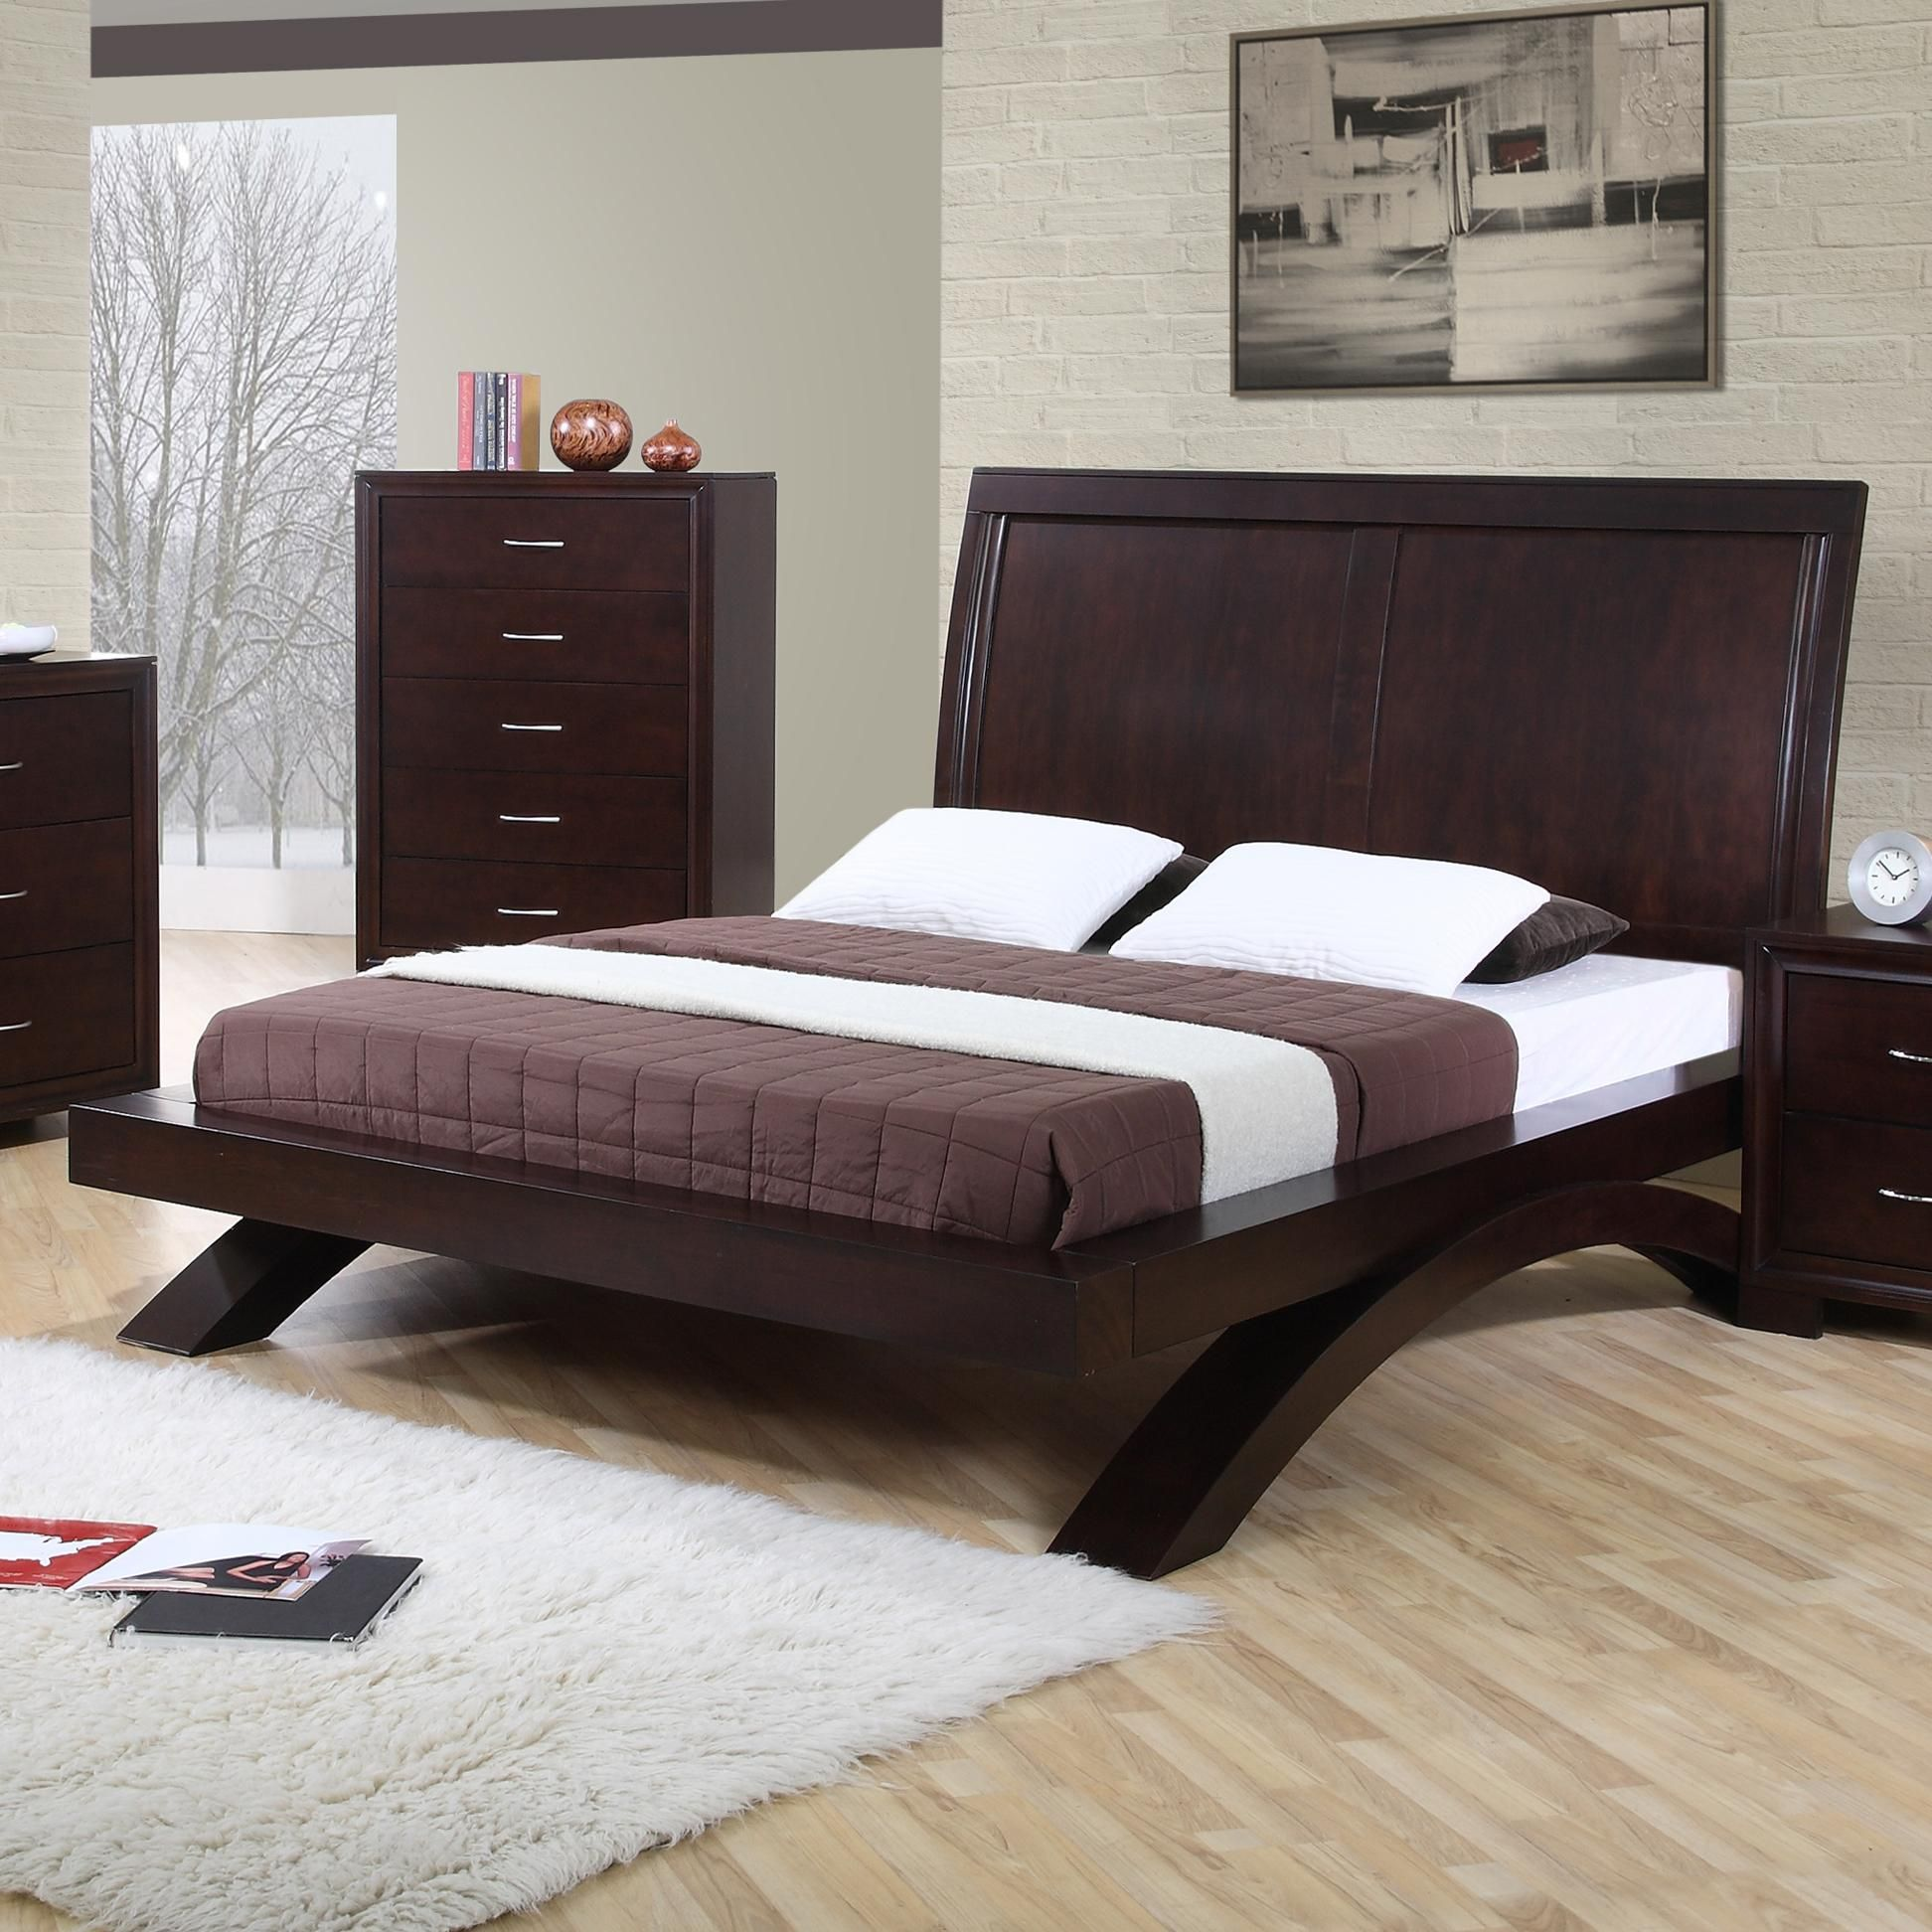 Raven King Contemporary Platform Bed By Elements